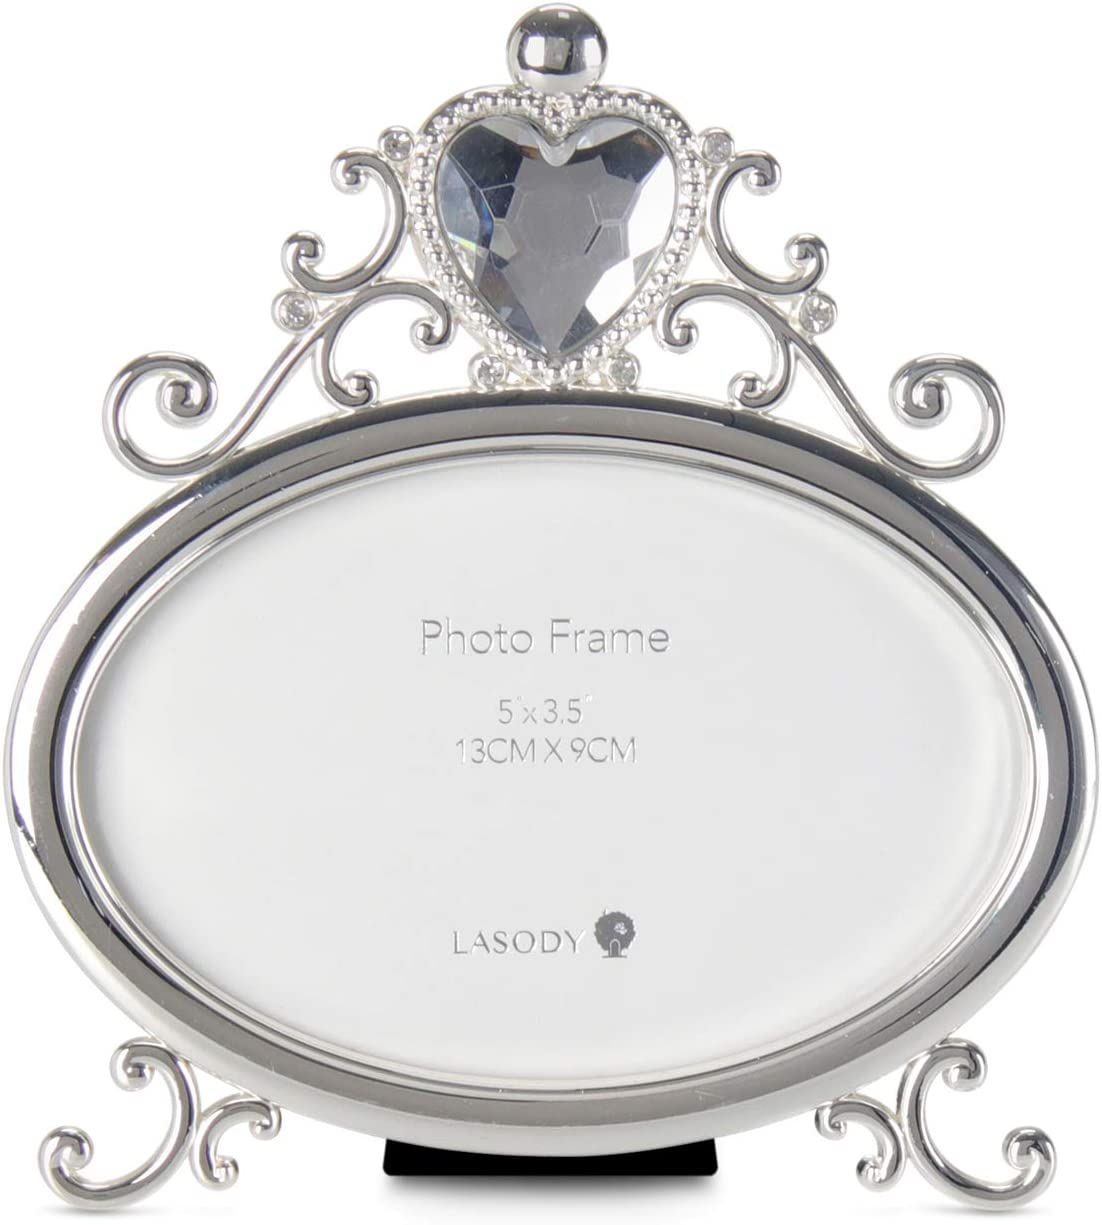 Silver Plated Baroque style photo frame with easel 3 12 x 5 or 9 cm x 13 cm Gift